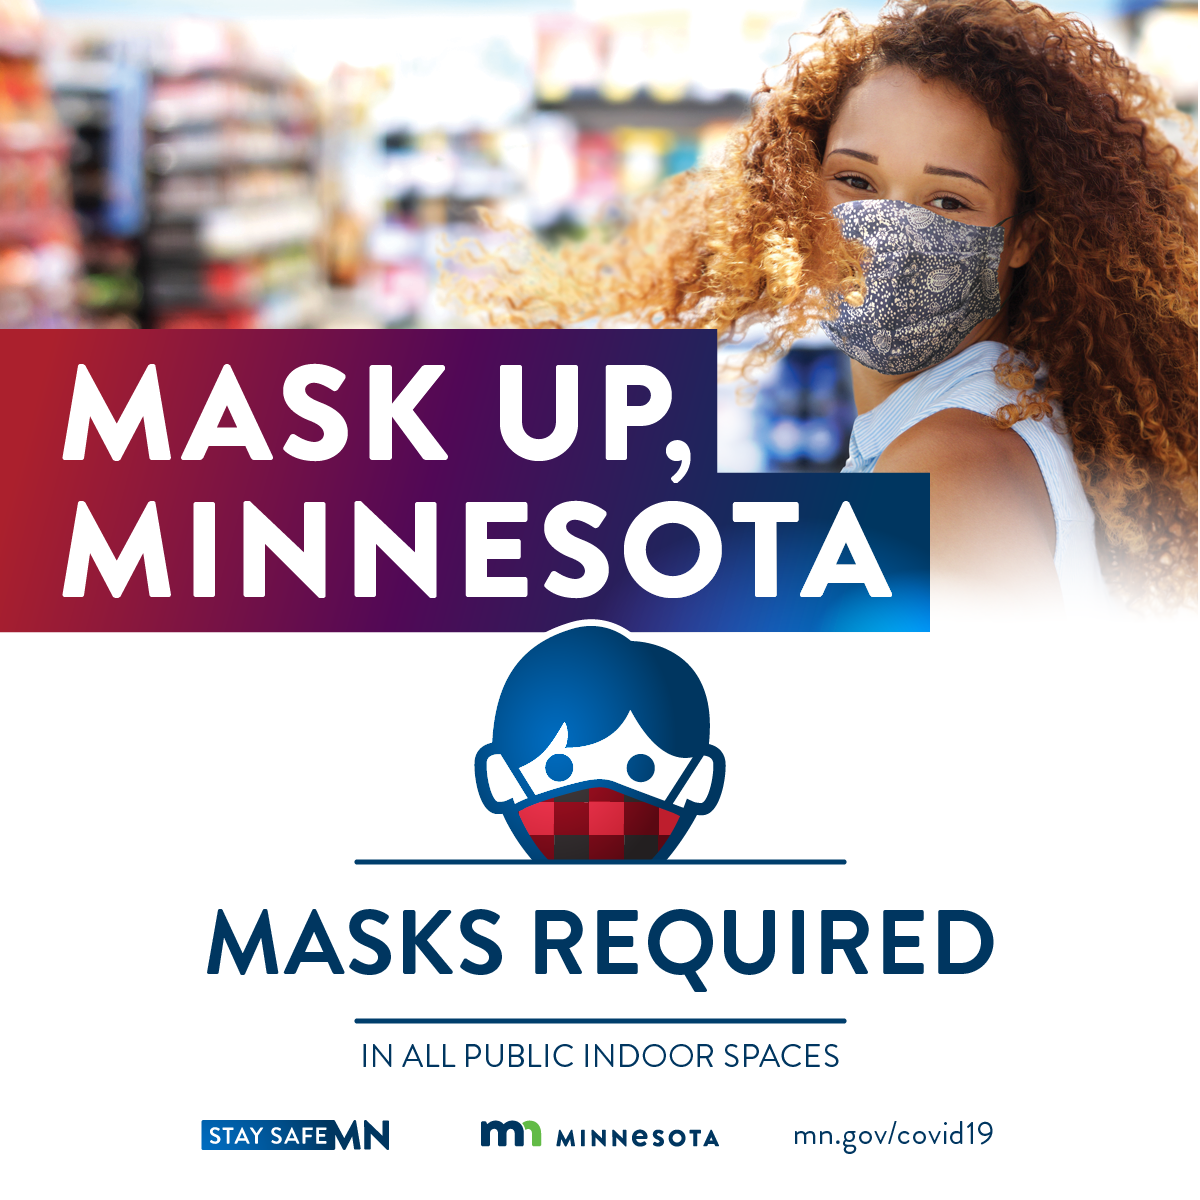 """Mask Up, Minnesota"" logo with woman wearing a face mask."